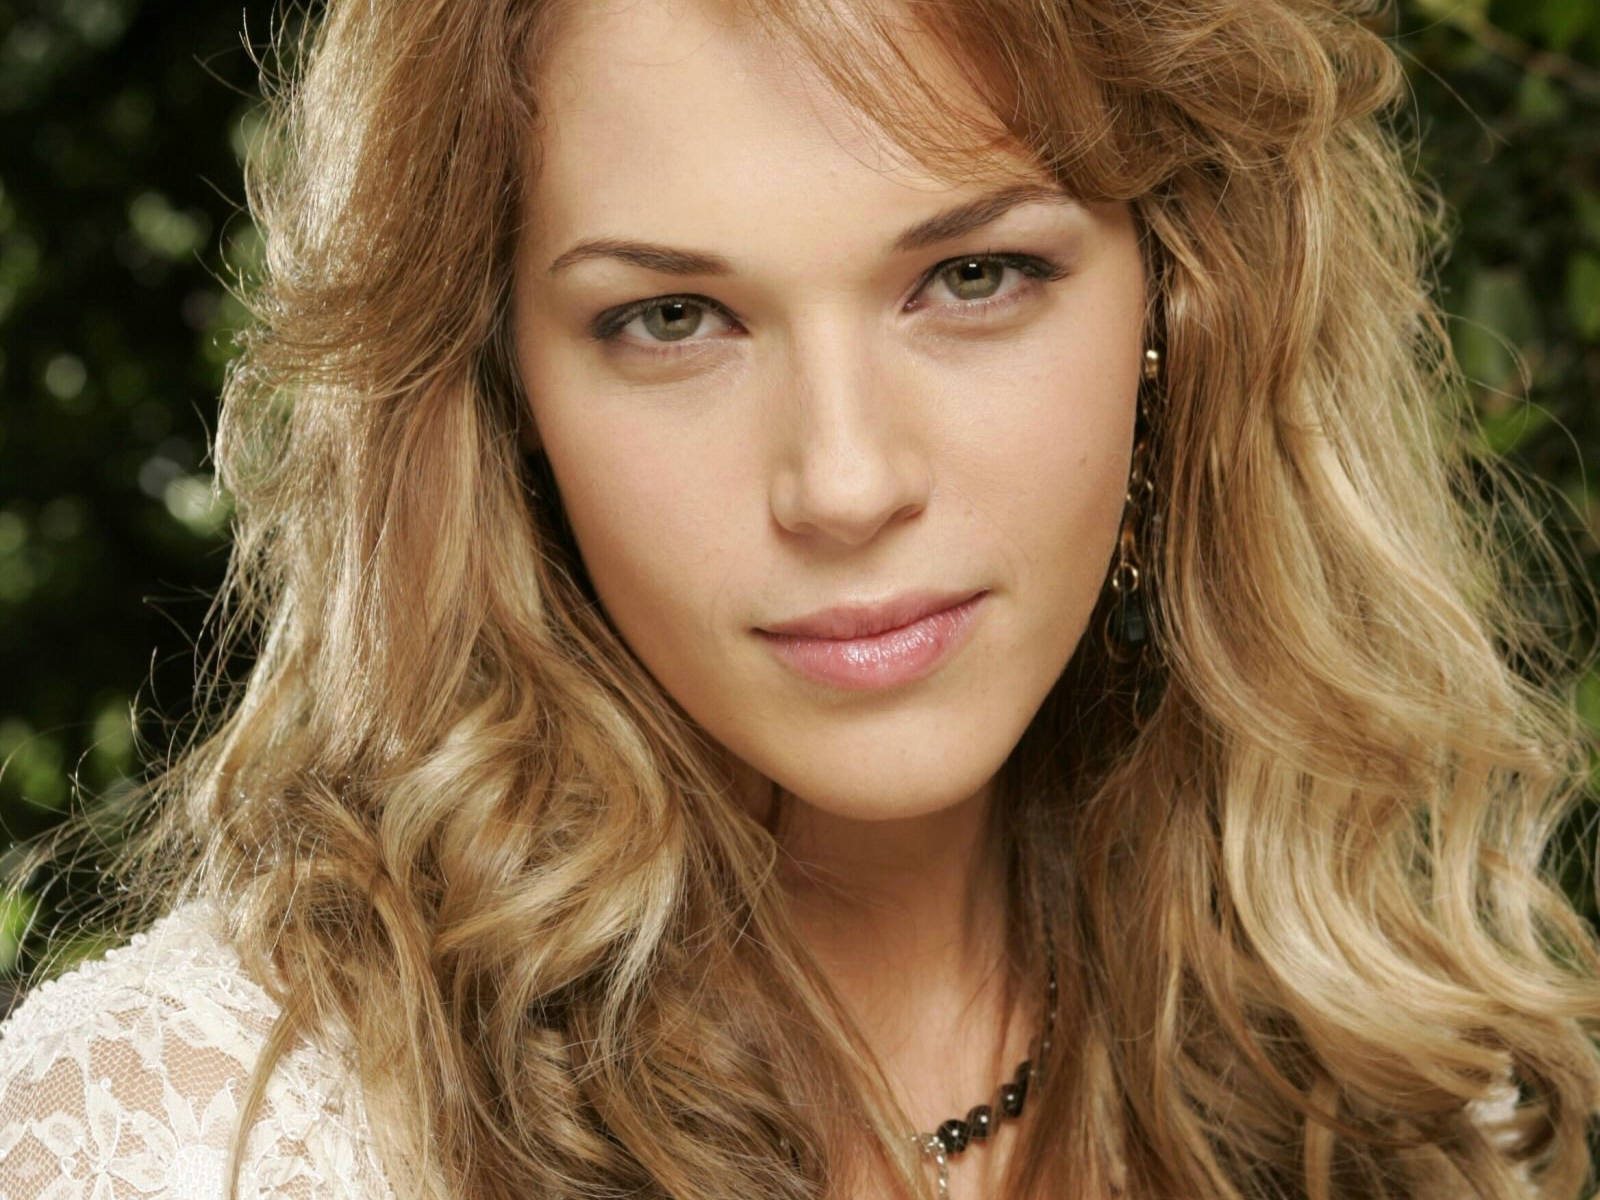 [Amanda Righetti 12 1600x1200 unique desktop wallpapers[2].jpg]